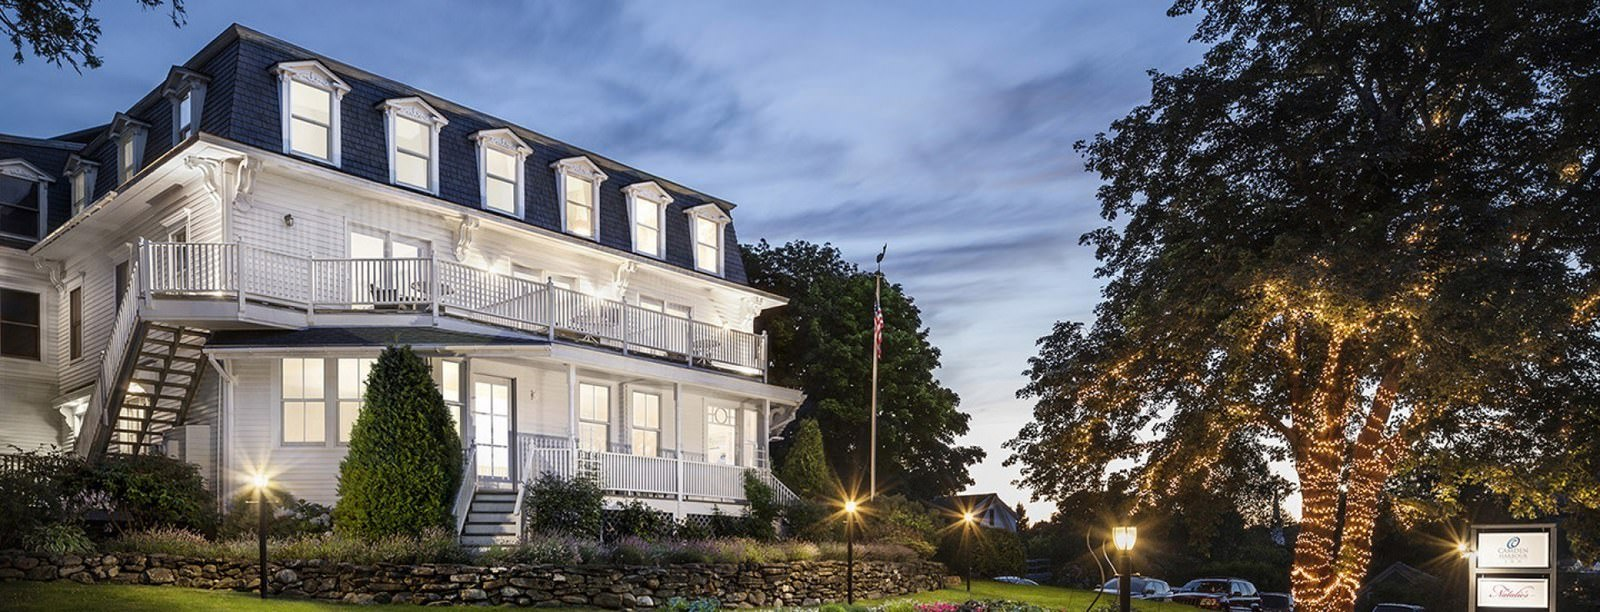 Ultimate List of Best Luxury Hotels in Camden, Maine, Relais Chateaux Camden Harbour hotel